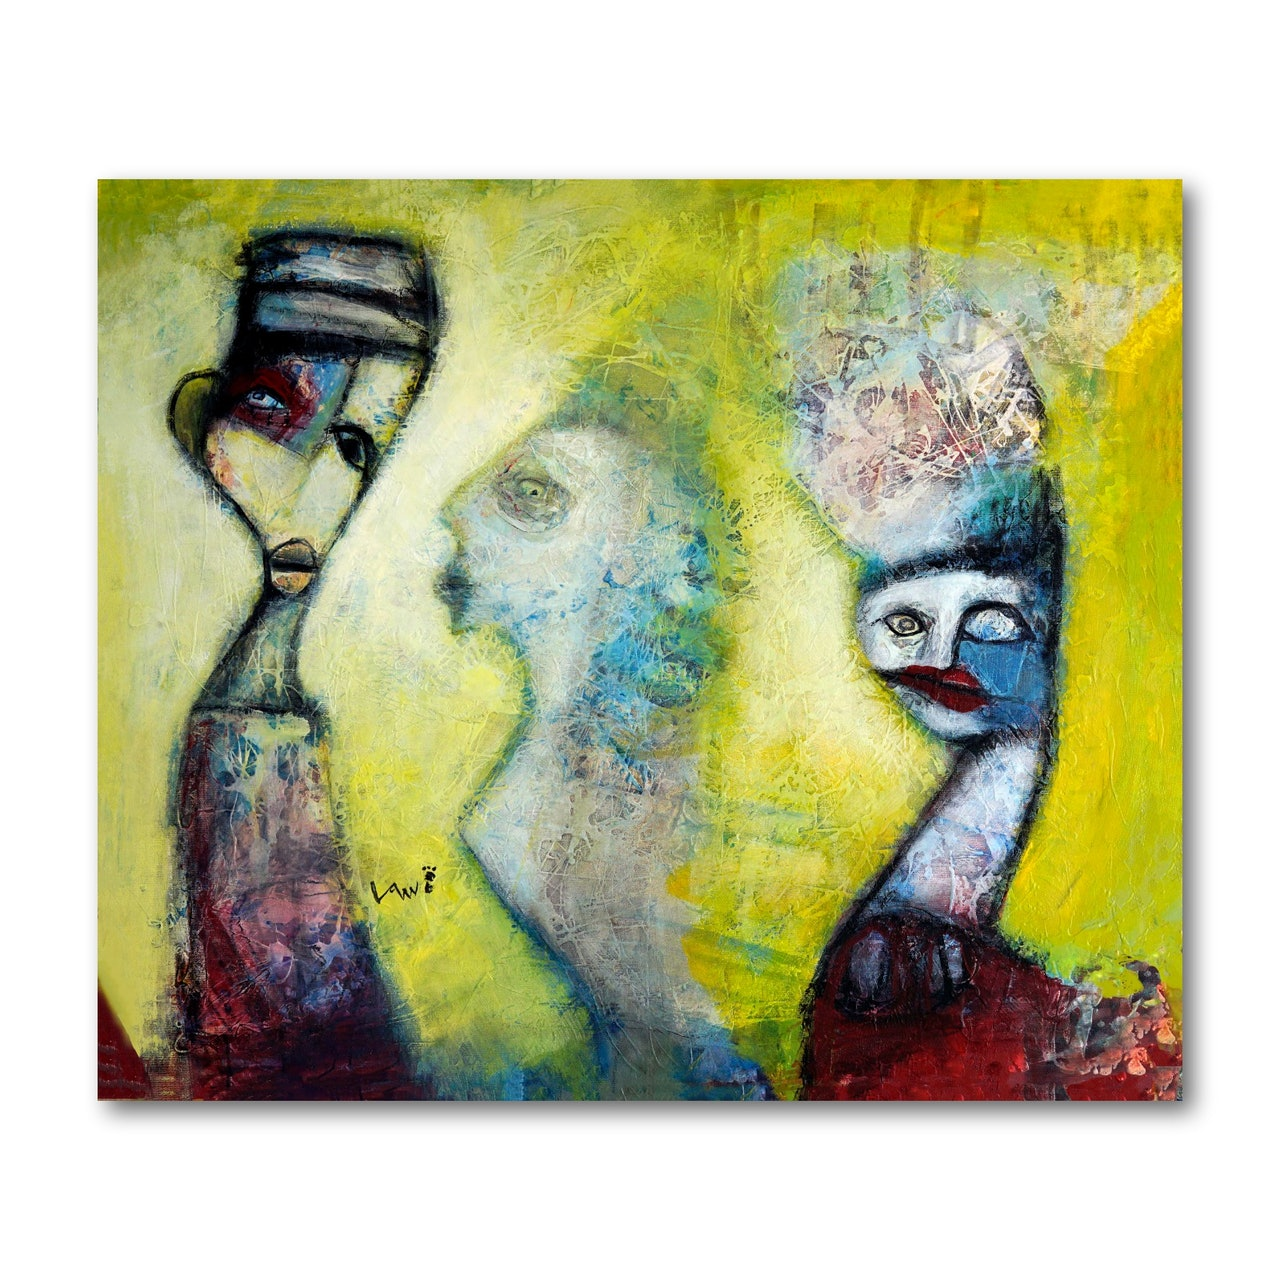 Neo-Abstract Expressionism-Canvas Painting-The Go Between by Ken Law